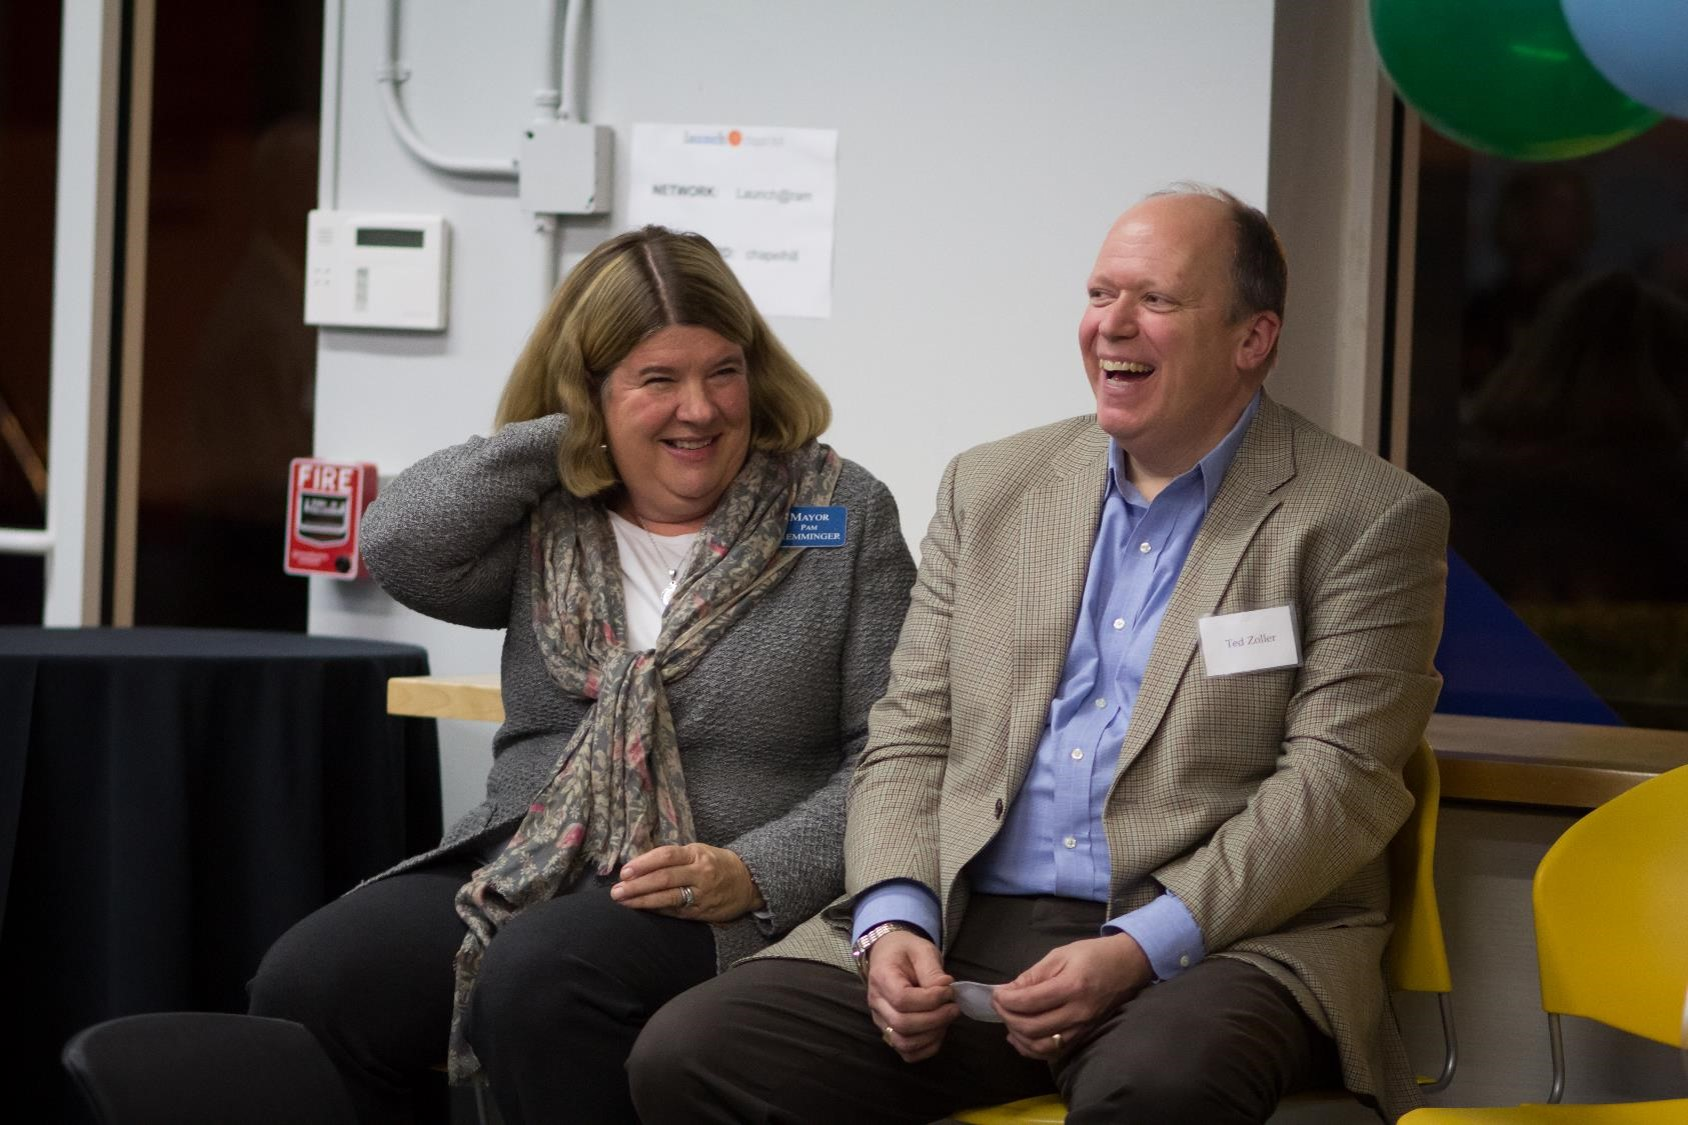 Pam Hemminger, mayor of Chapel Hill, and Ted Zoller, T.W. Lewis Clinical Professor of Strategy and Entrepreneurship and Director of the Center for Entrepreneurial Studies, help lead the celebration.